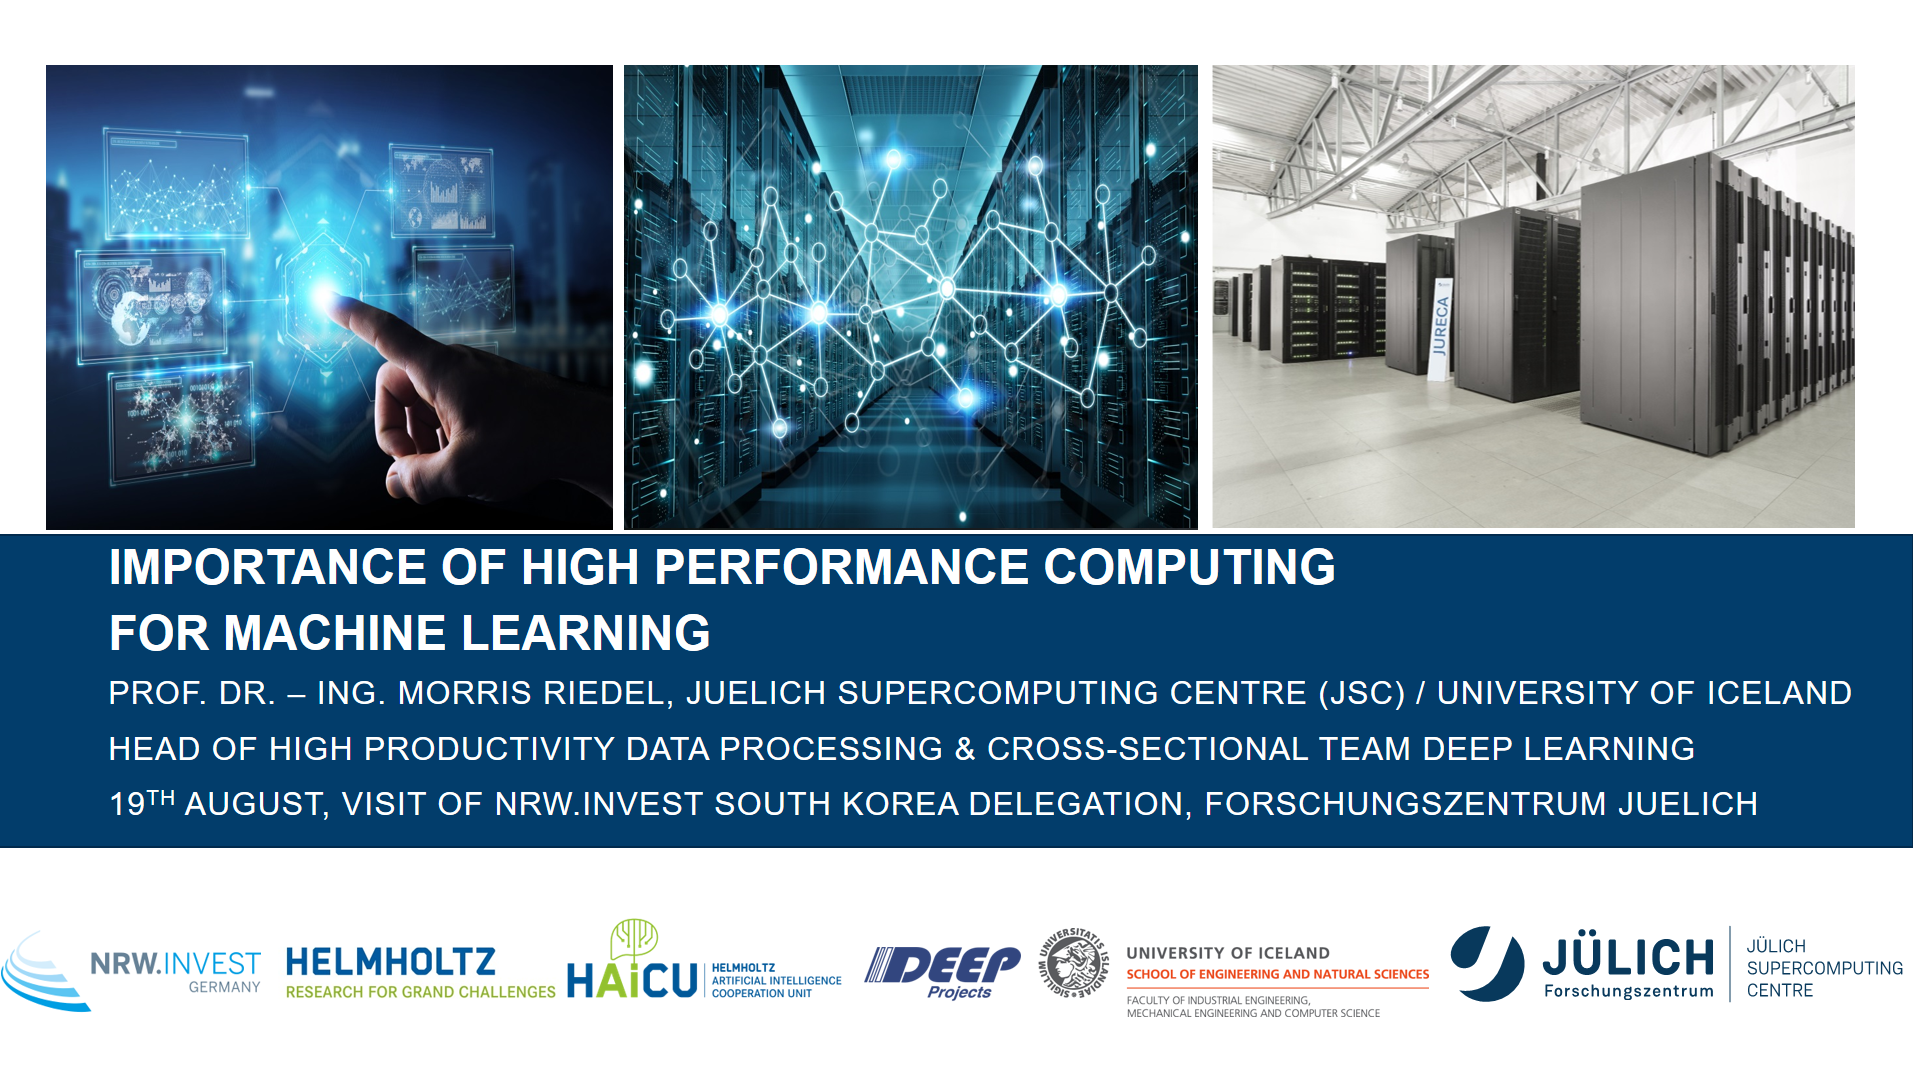 Importance of High Performance Computing for Machine Learning Morris Riedel